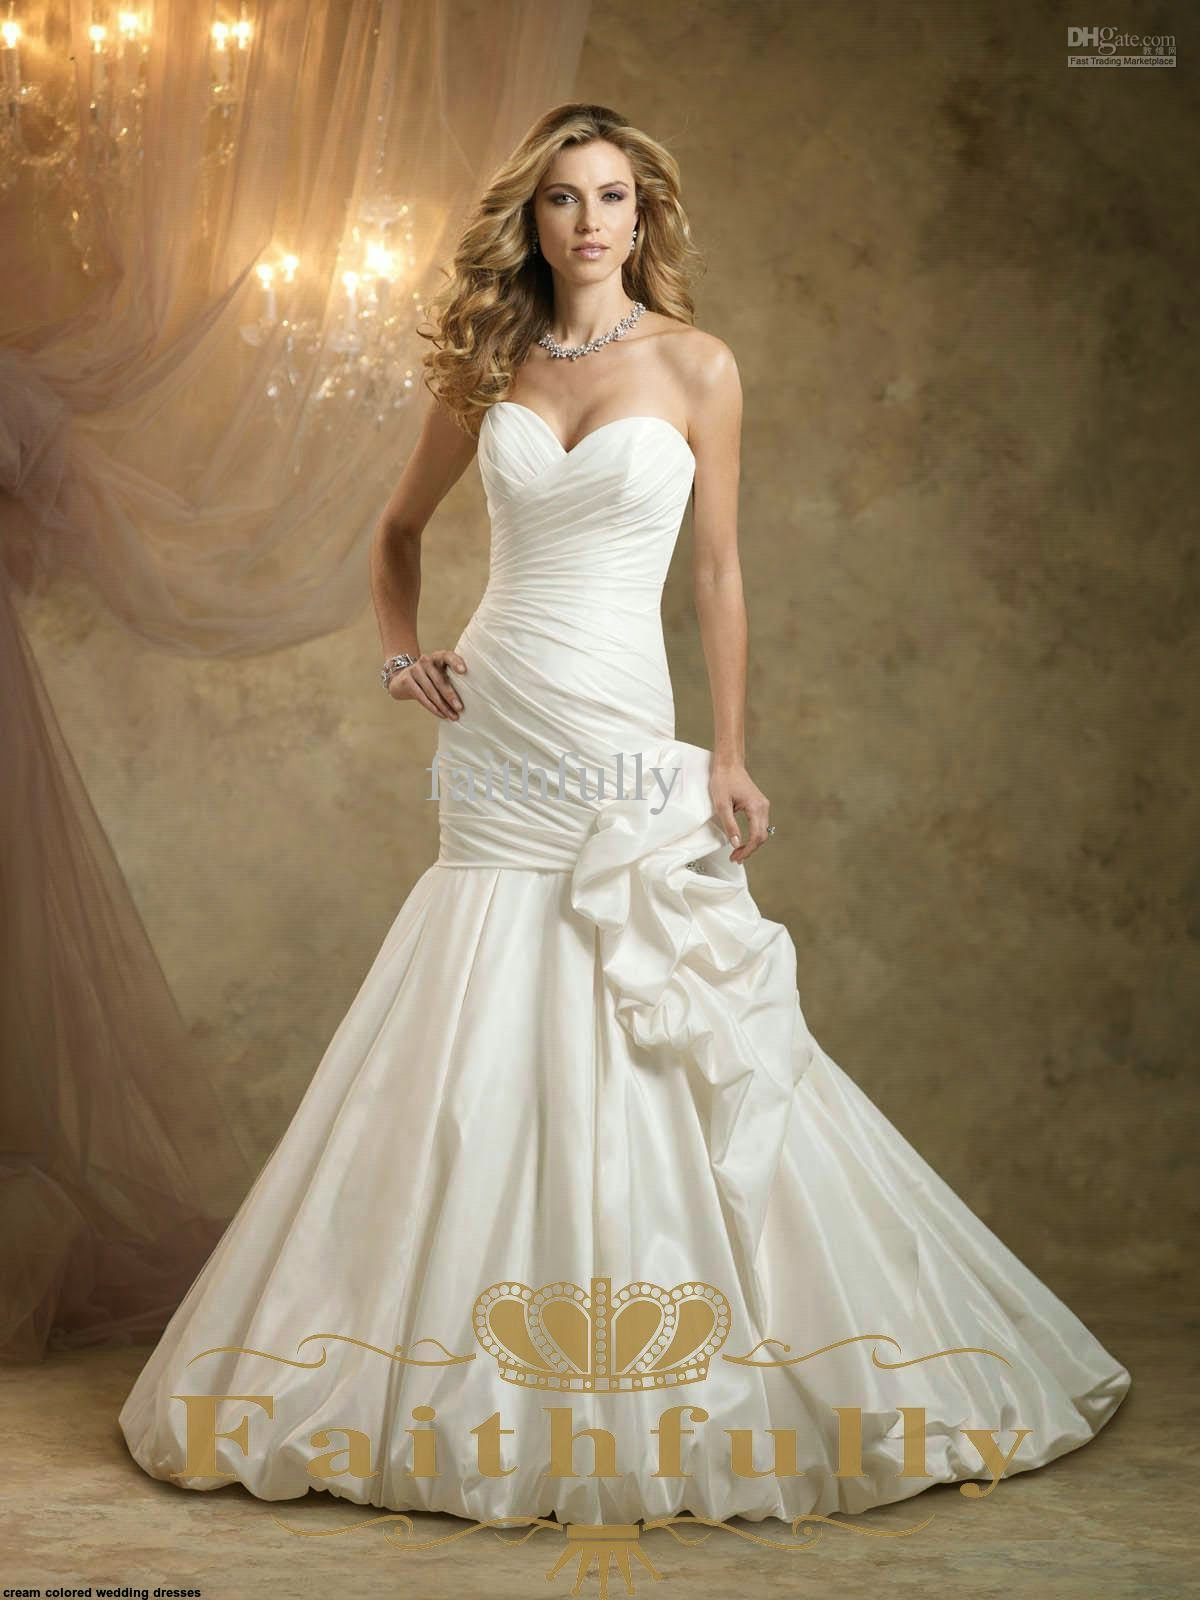 Tips for Cream Colored Wedding Dresses | Wedding Dresses ...